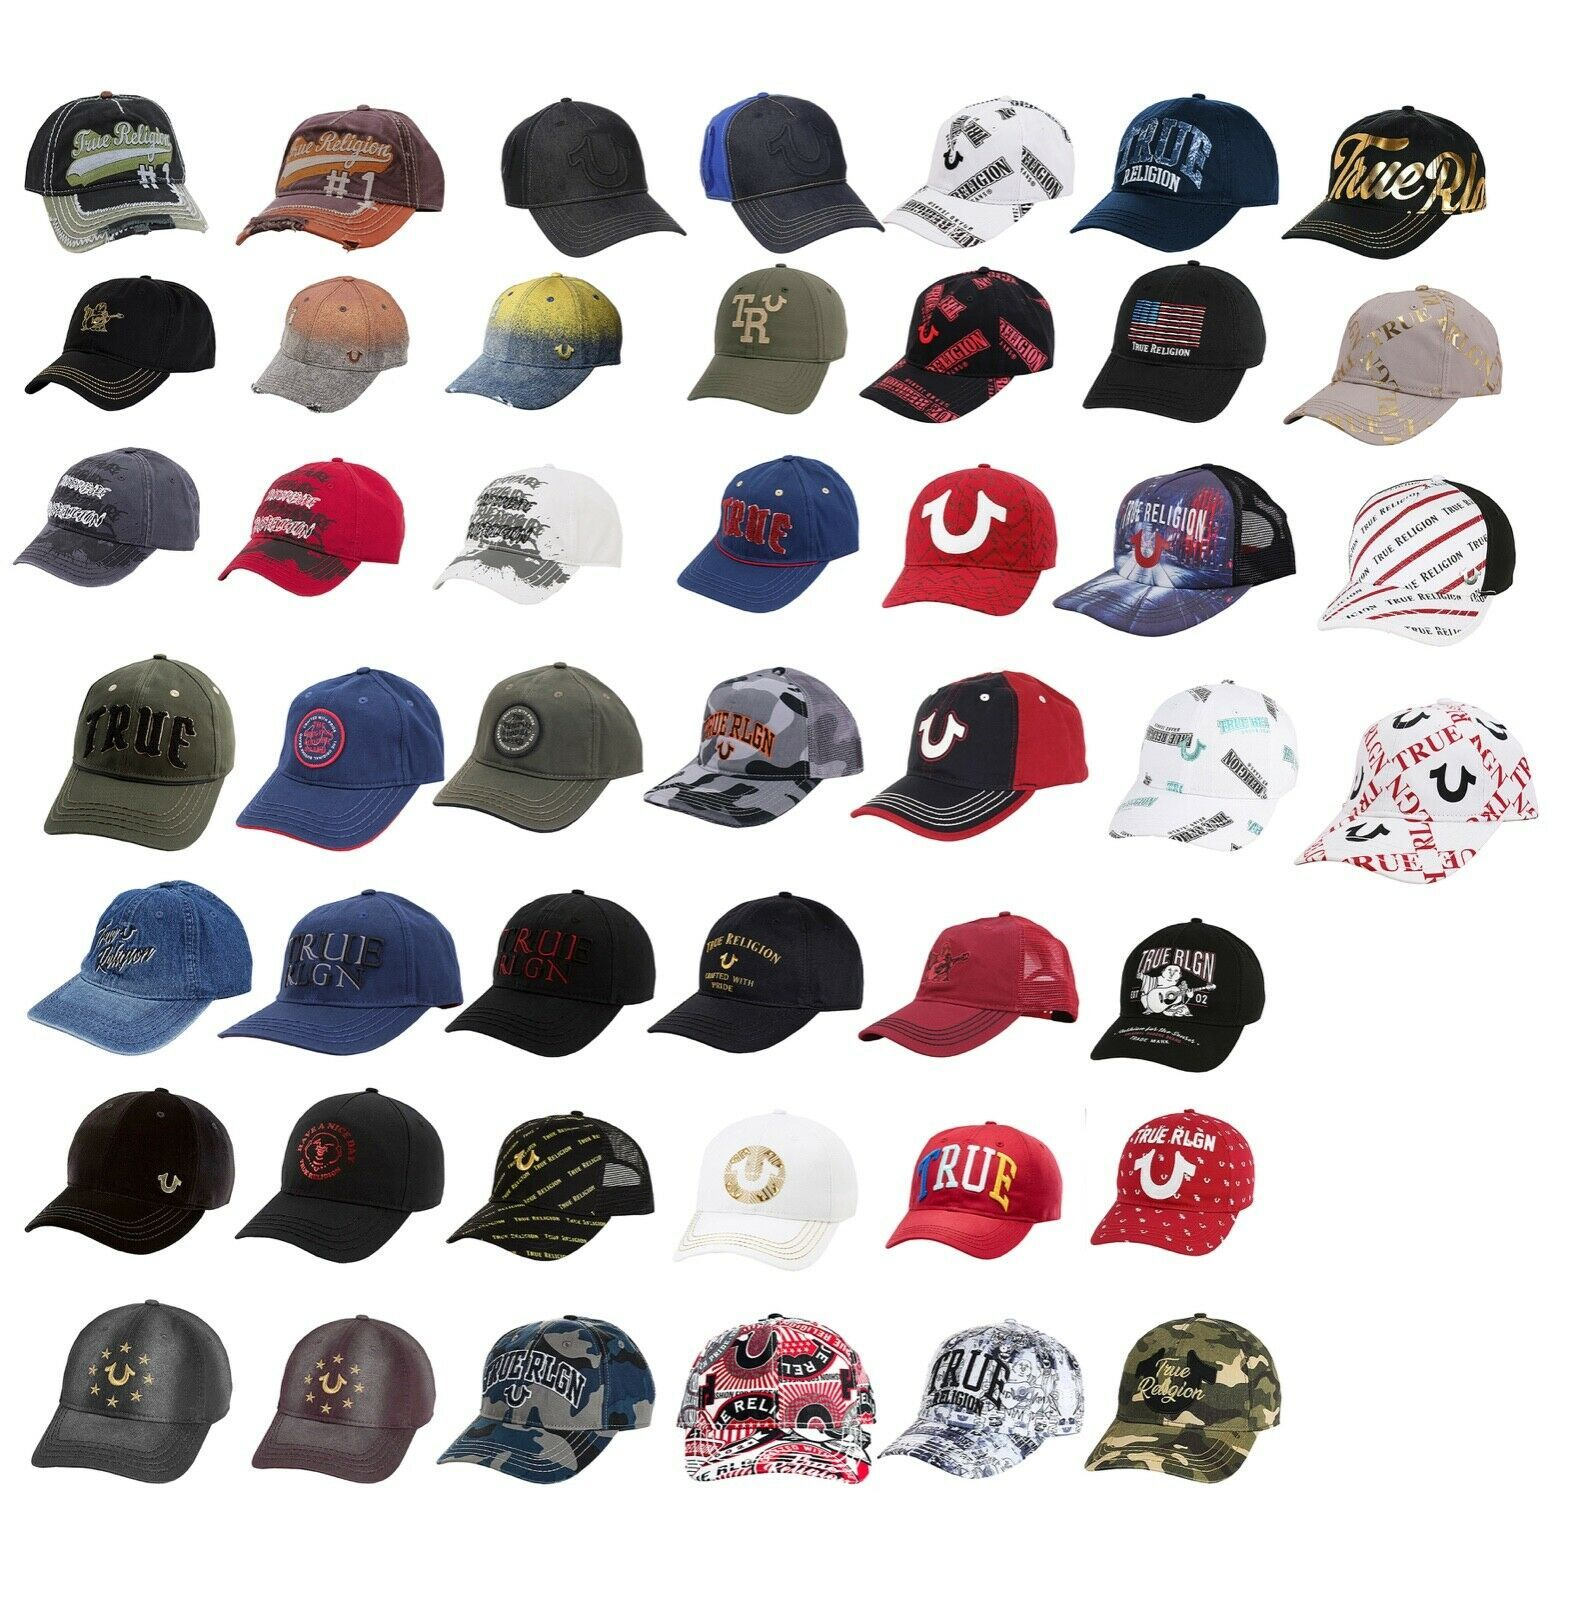 Wholesale Lot True Religion Men's Premium Adjustable Baseball Trucker Hat